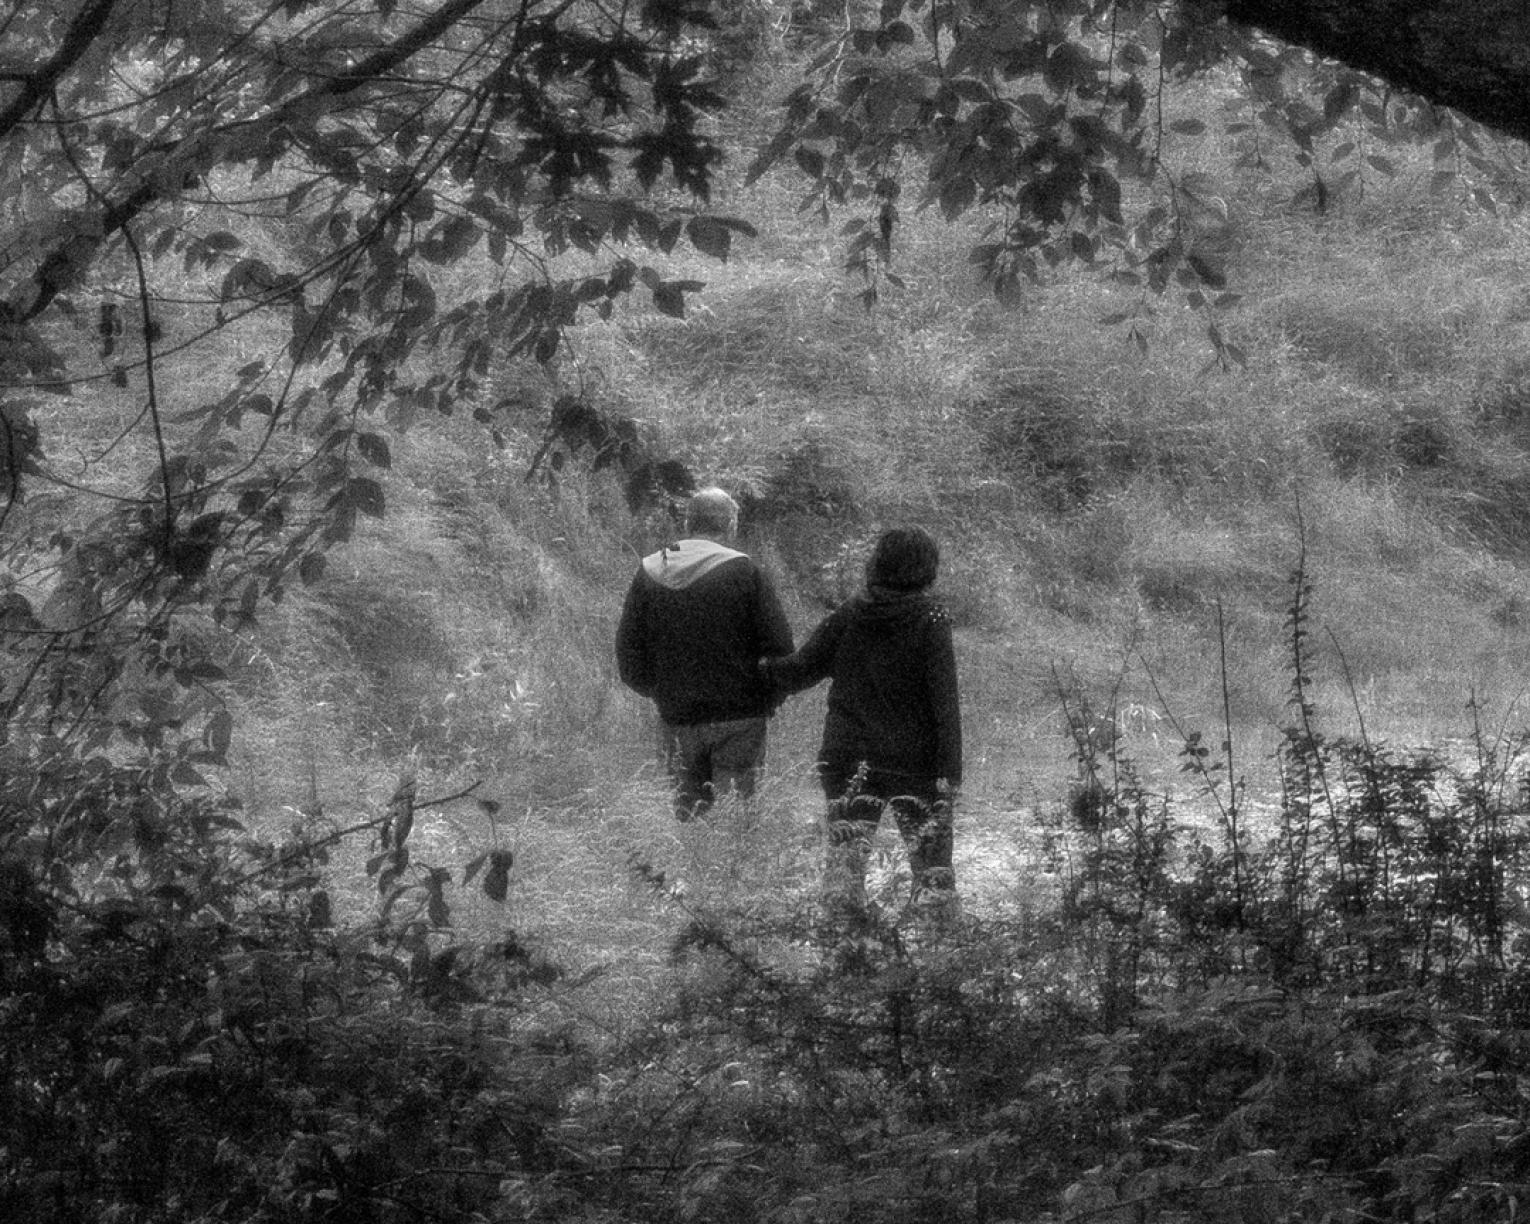 Black and white photo of a couple holding hands and walking in nature